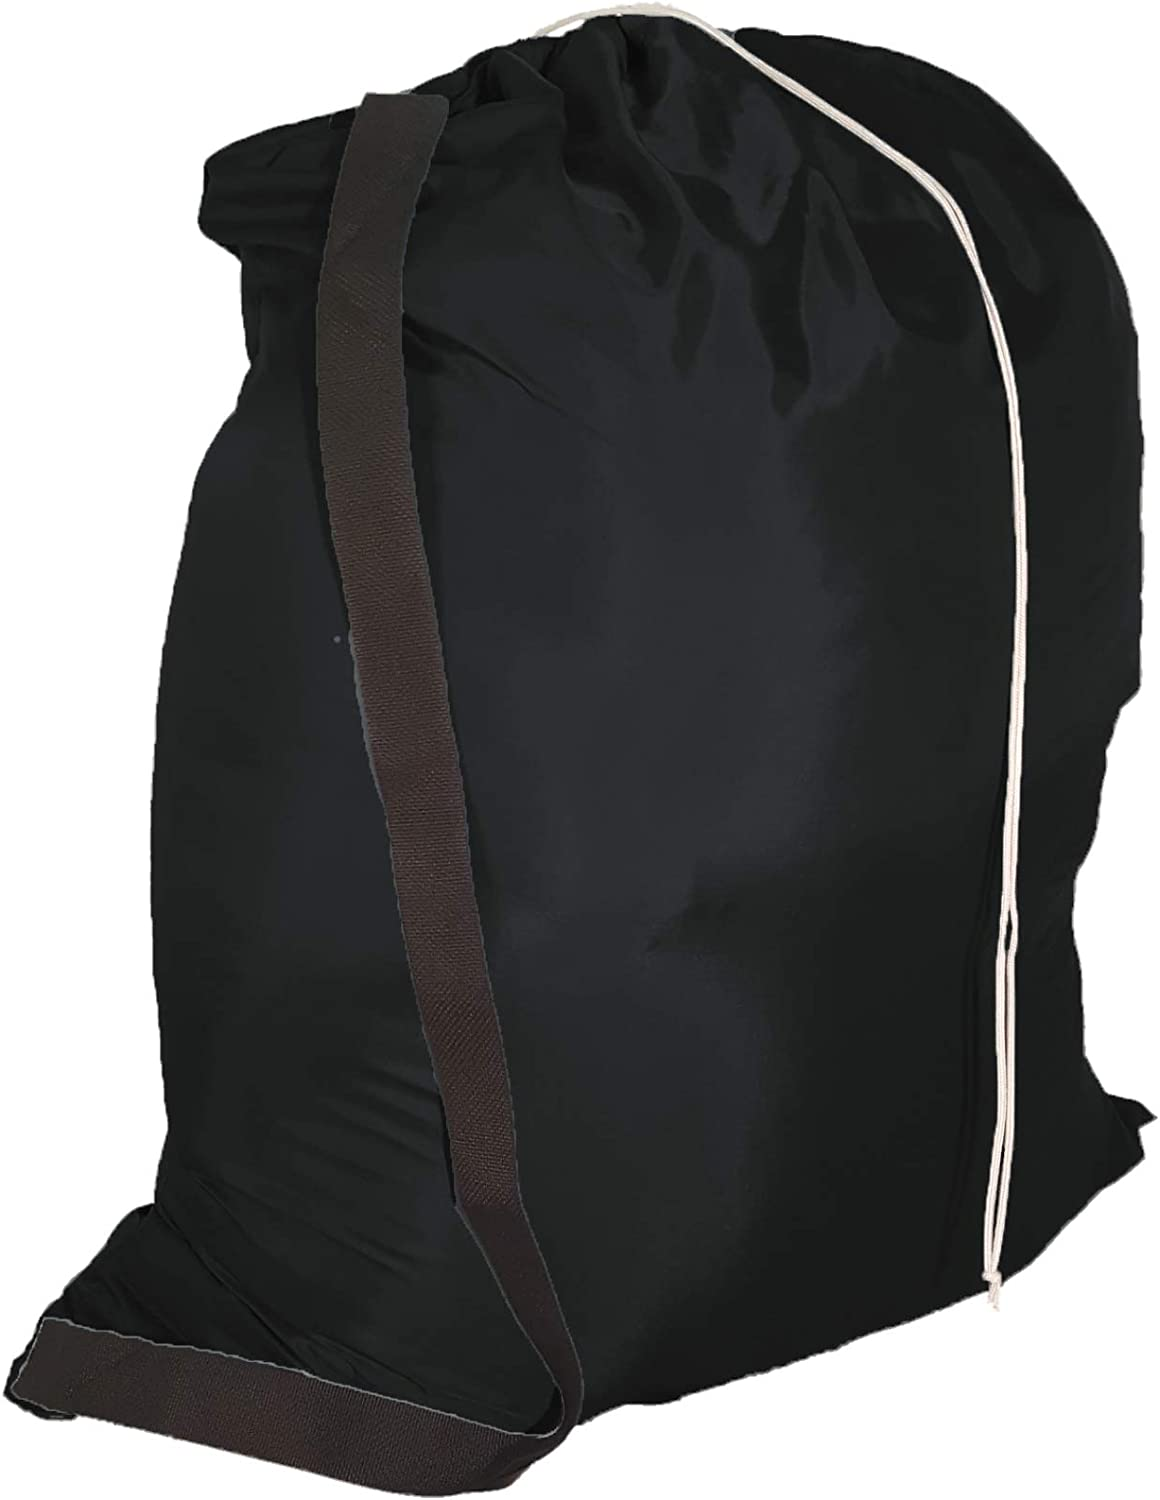 Owen Sewn Heavy Duty 40inx50in Nylon Laundry Bag with Strap - Black